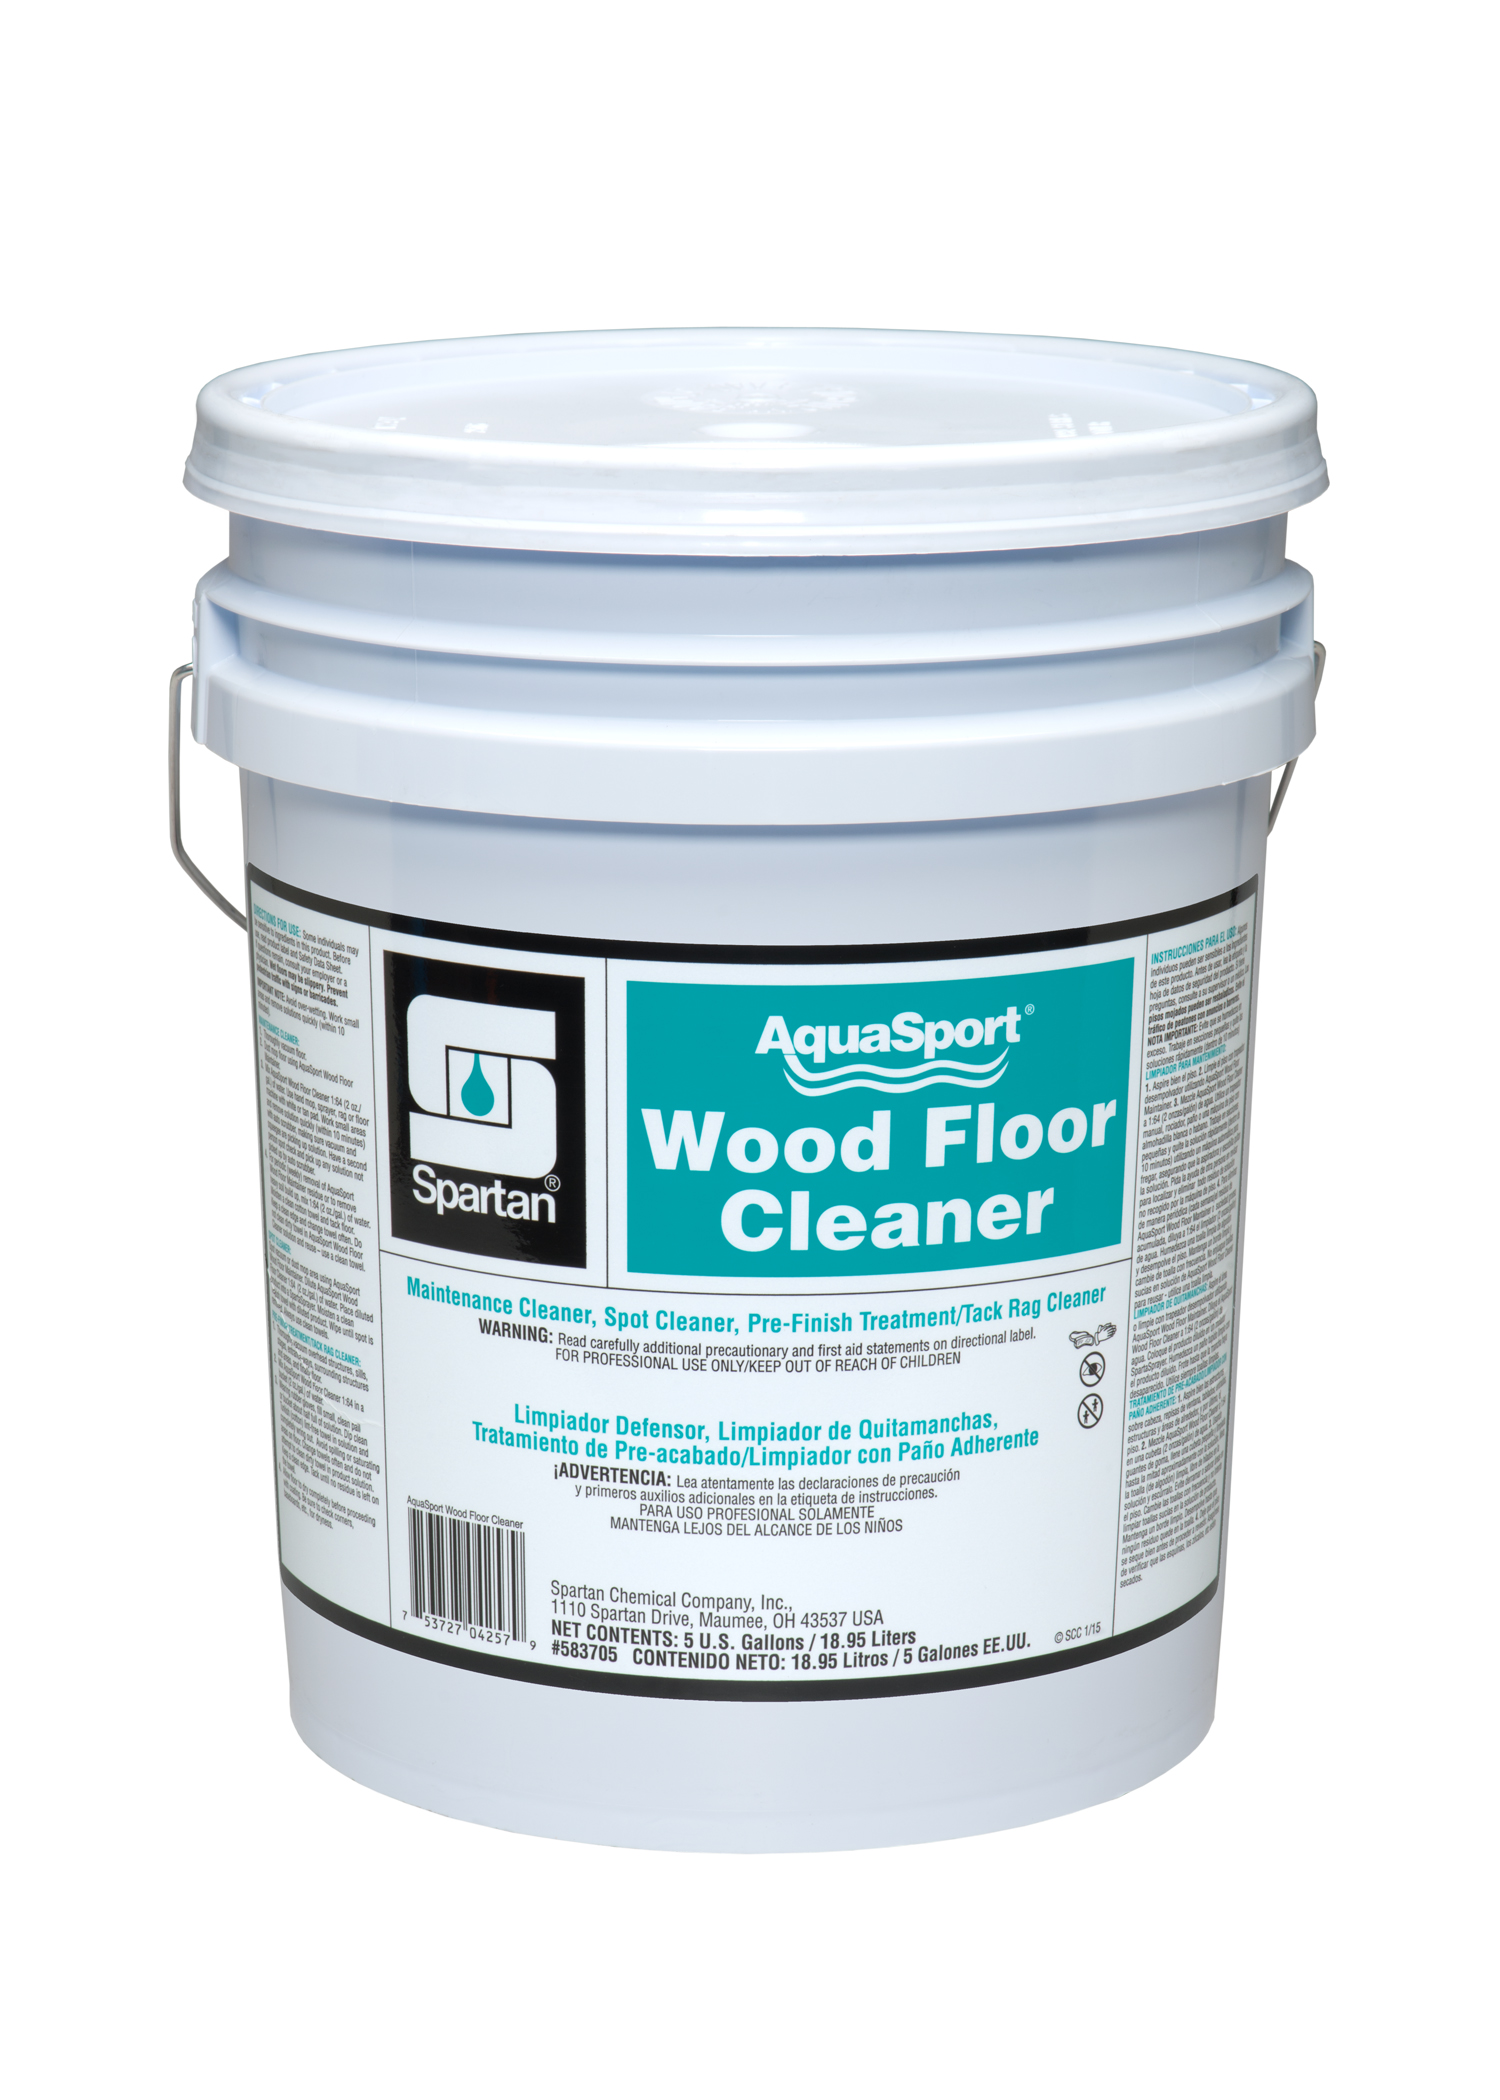 PicturesLogo/WOOD FLOOR CLEANERS.jpg